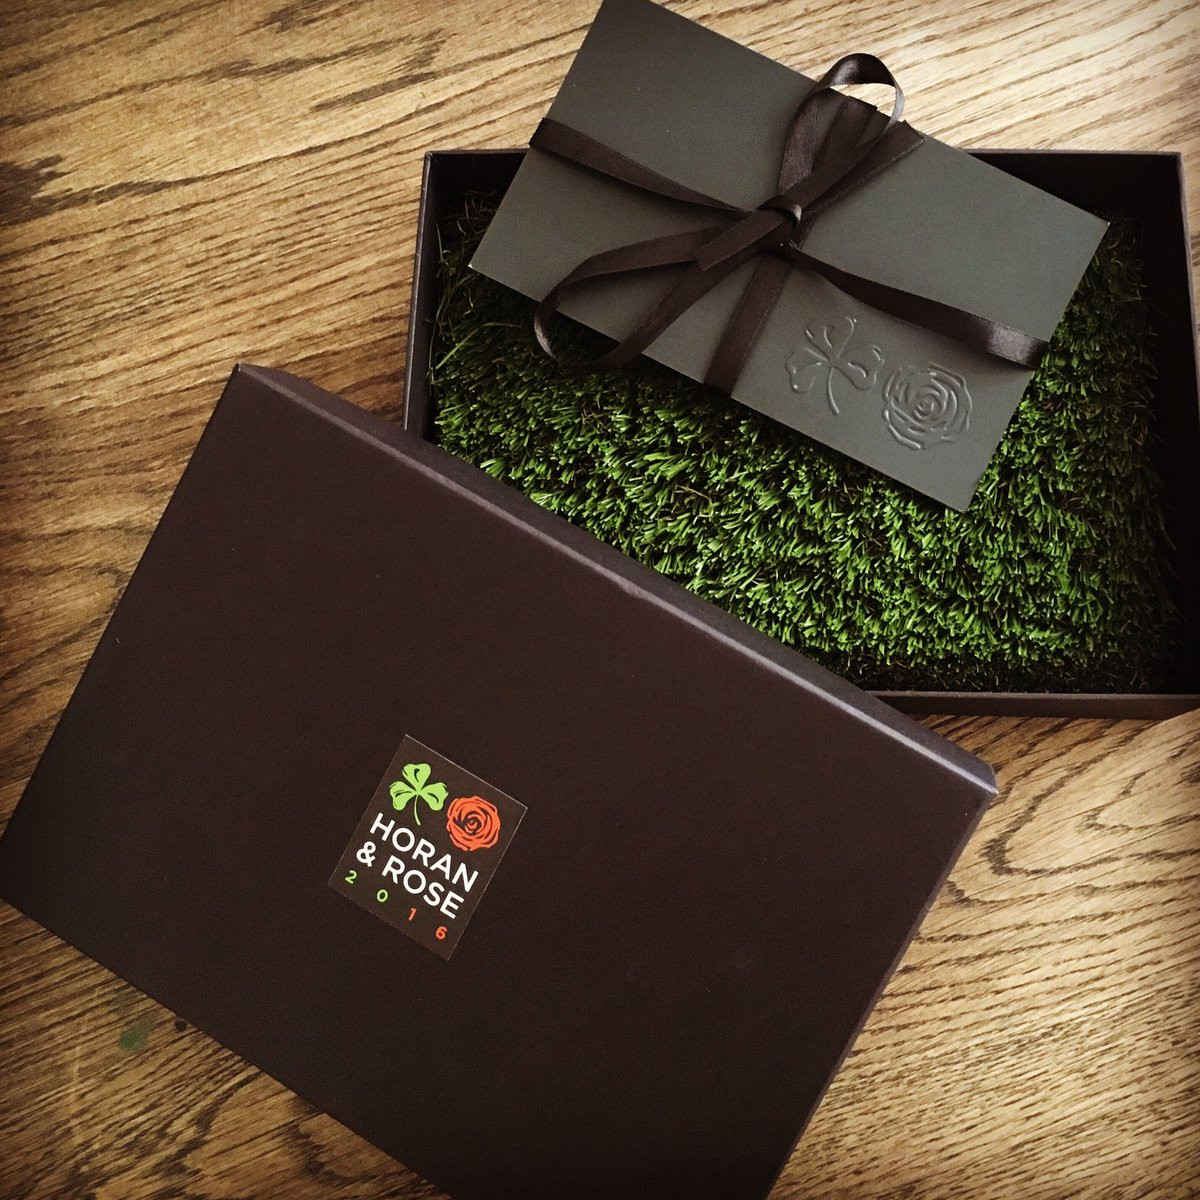 Love the grass, nice touch. Looking forward to Horan/Rose tomorrow.. your idea @NiallOfficial or @JustinRose99 ?! https://t.co/Cn3rOR39Qs